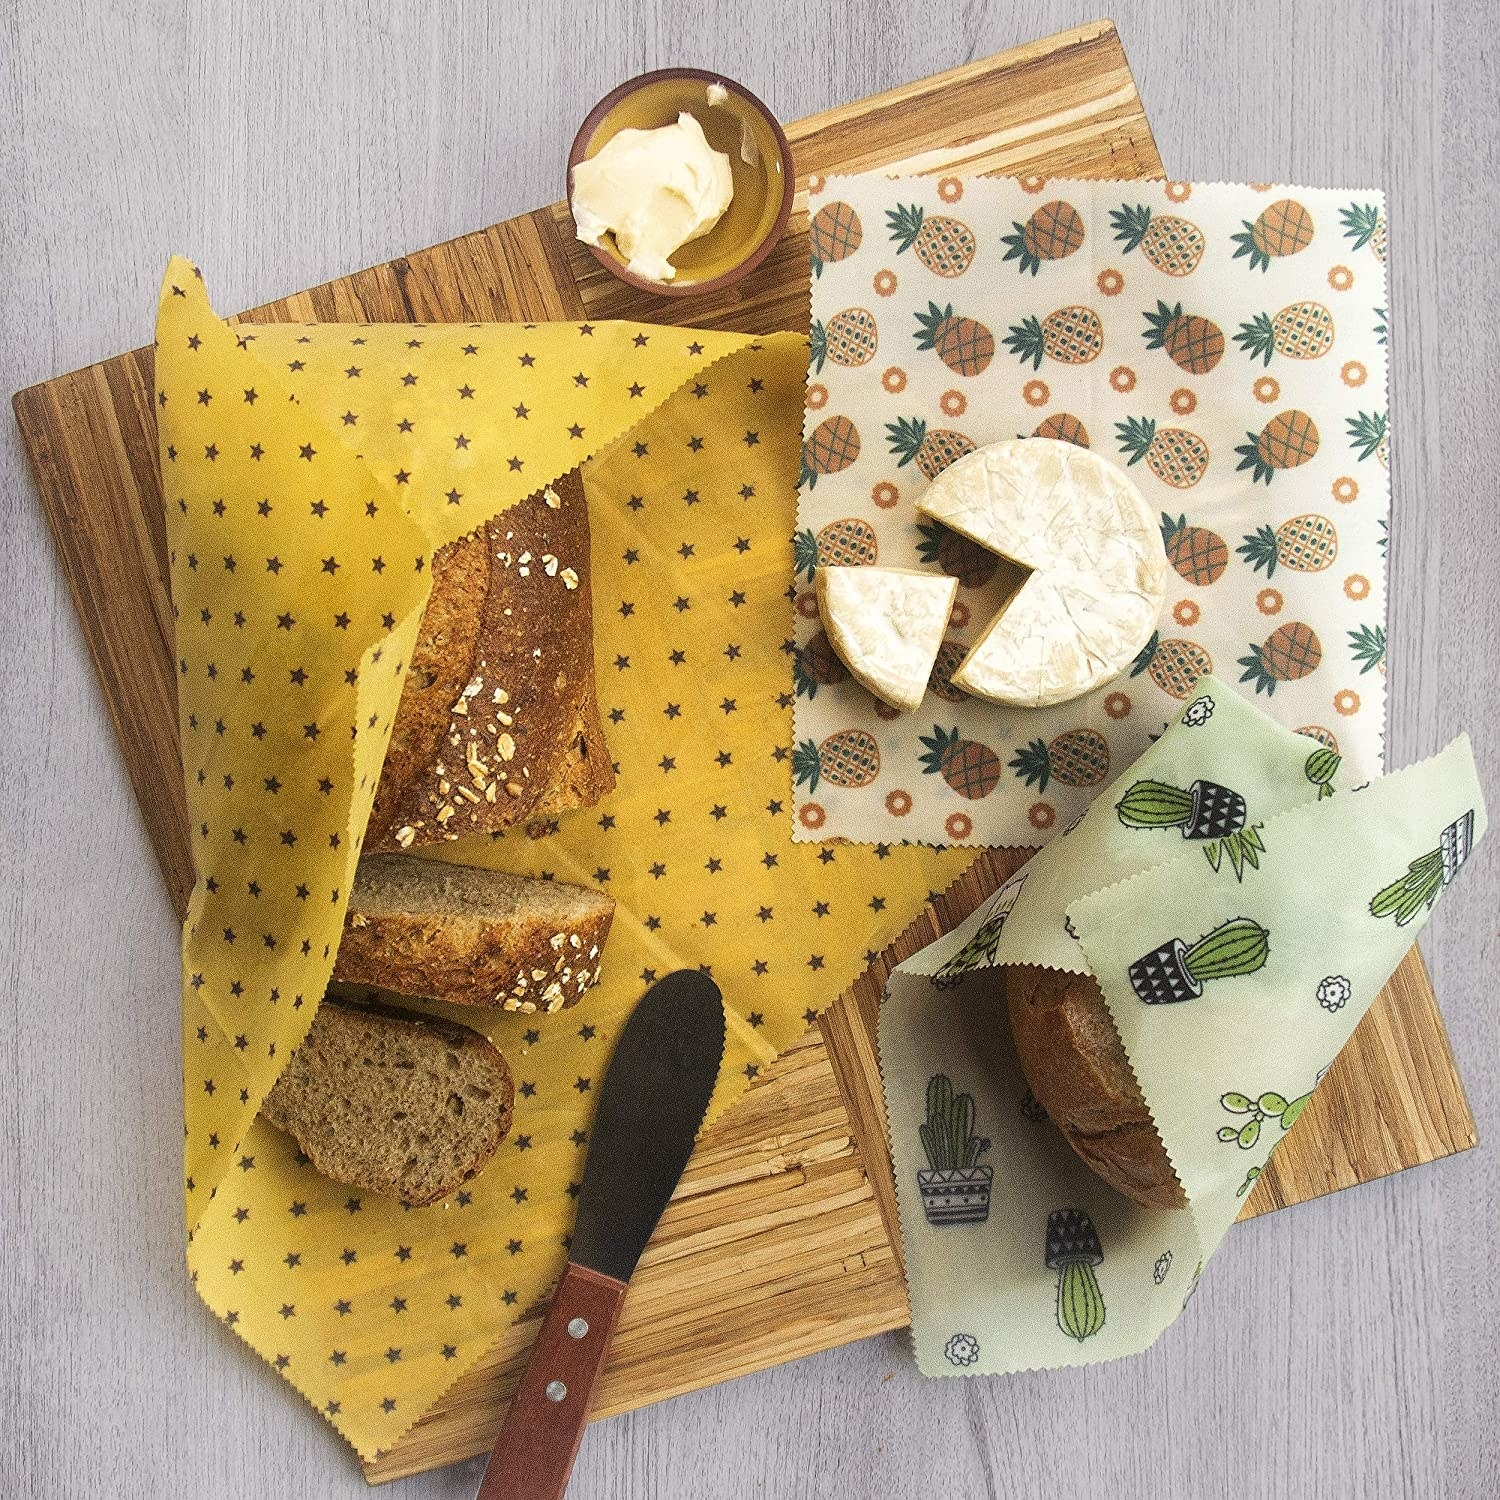 The reusable wax wraps covering cheese and bread on a cutting board